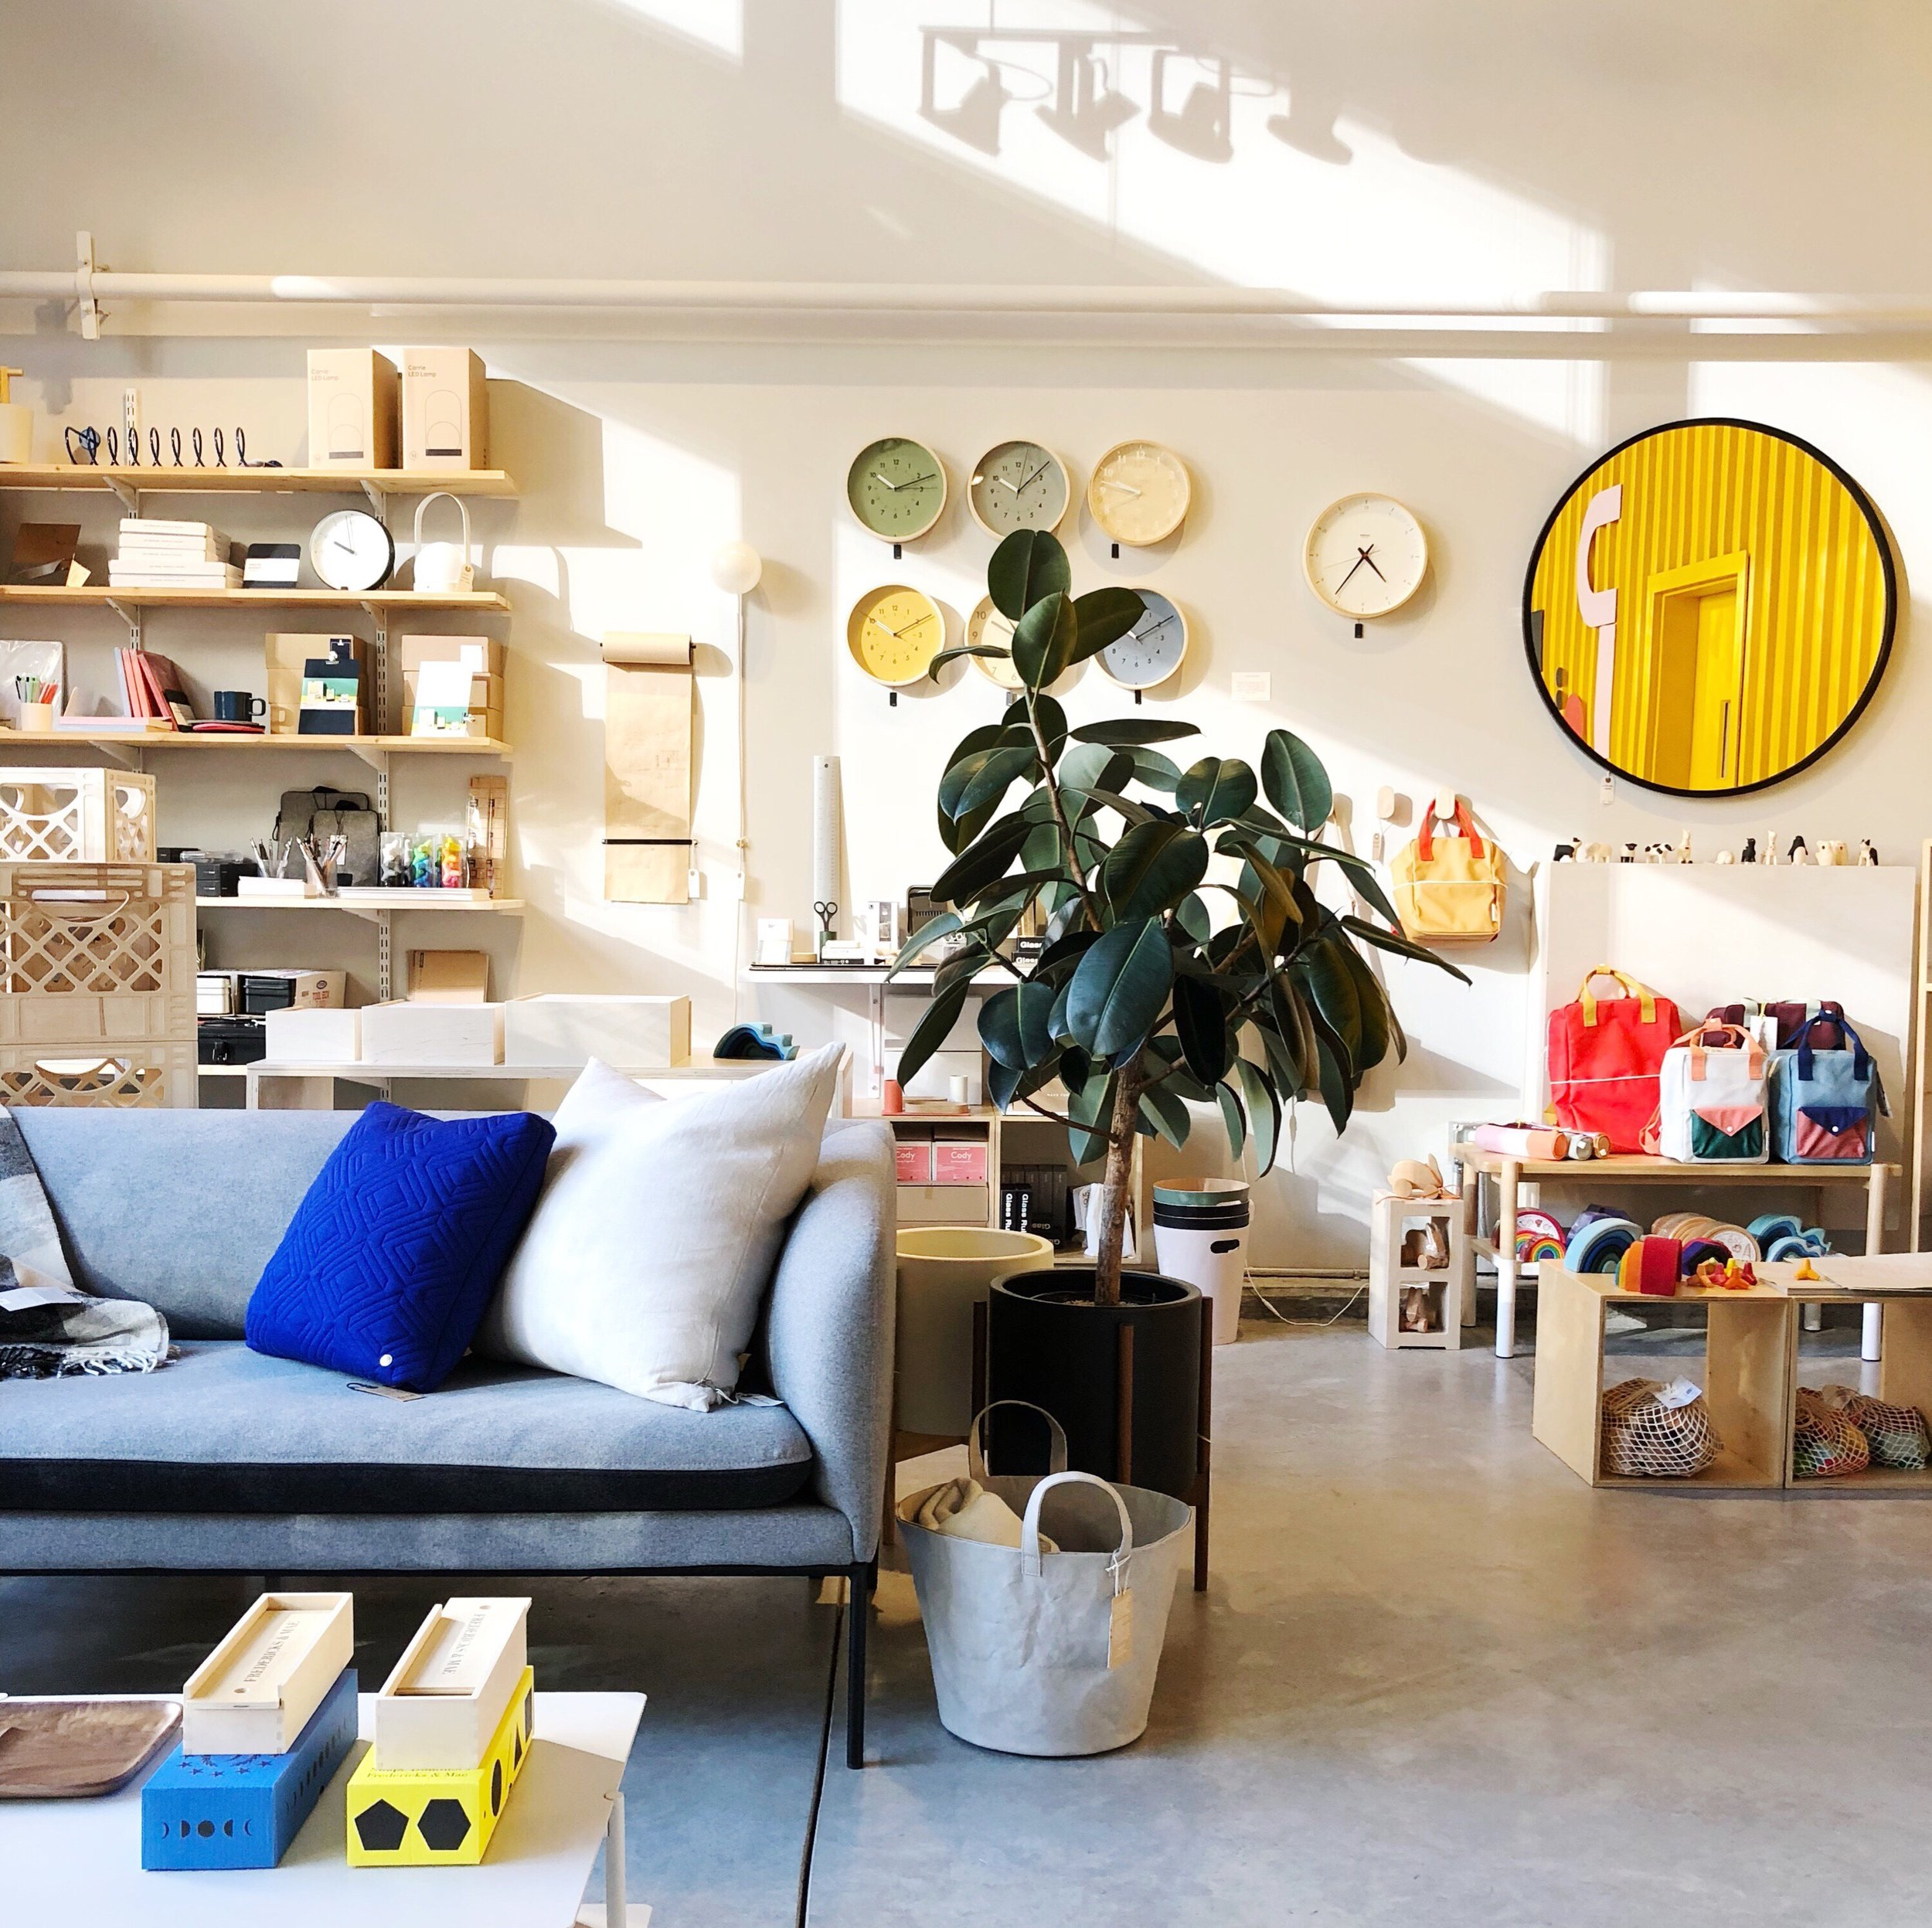 Port of Raleigh - Where modern, simple, fun & functional designs come together, for you and your home #experienceyoureveryday416 S McDowell St.